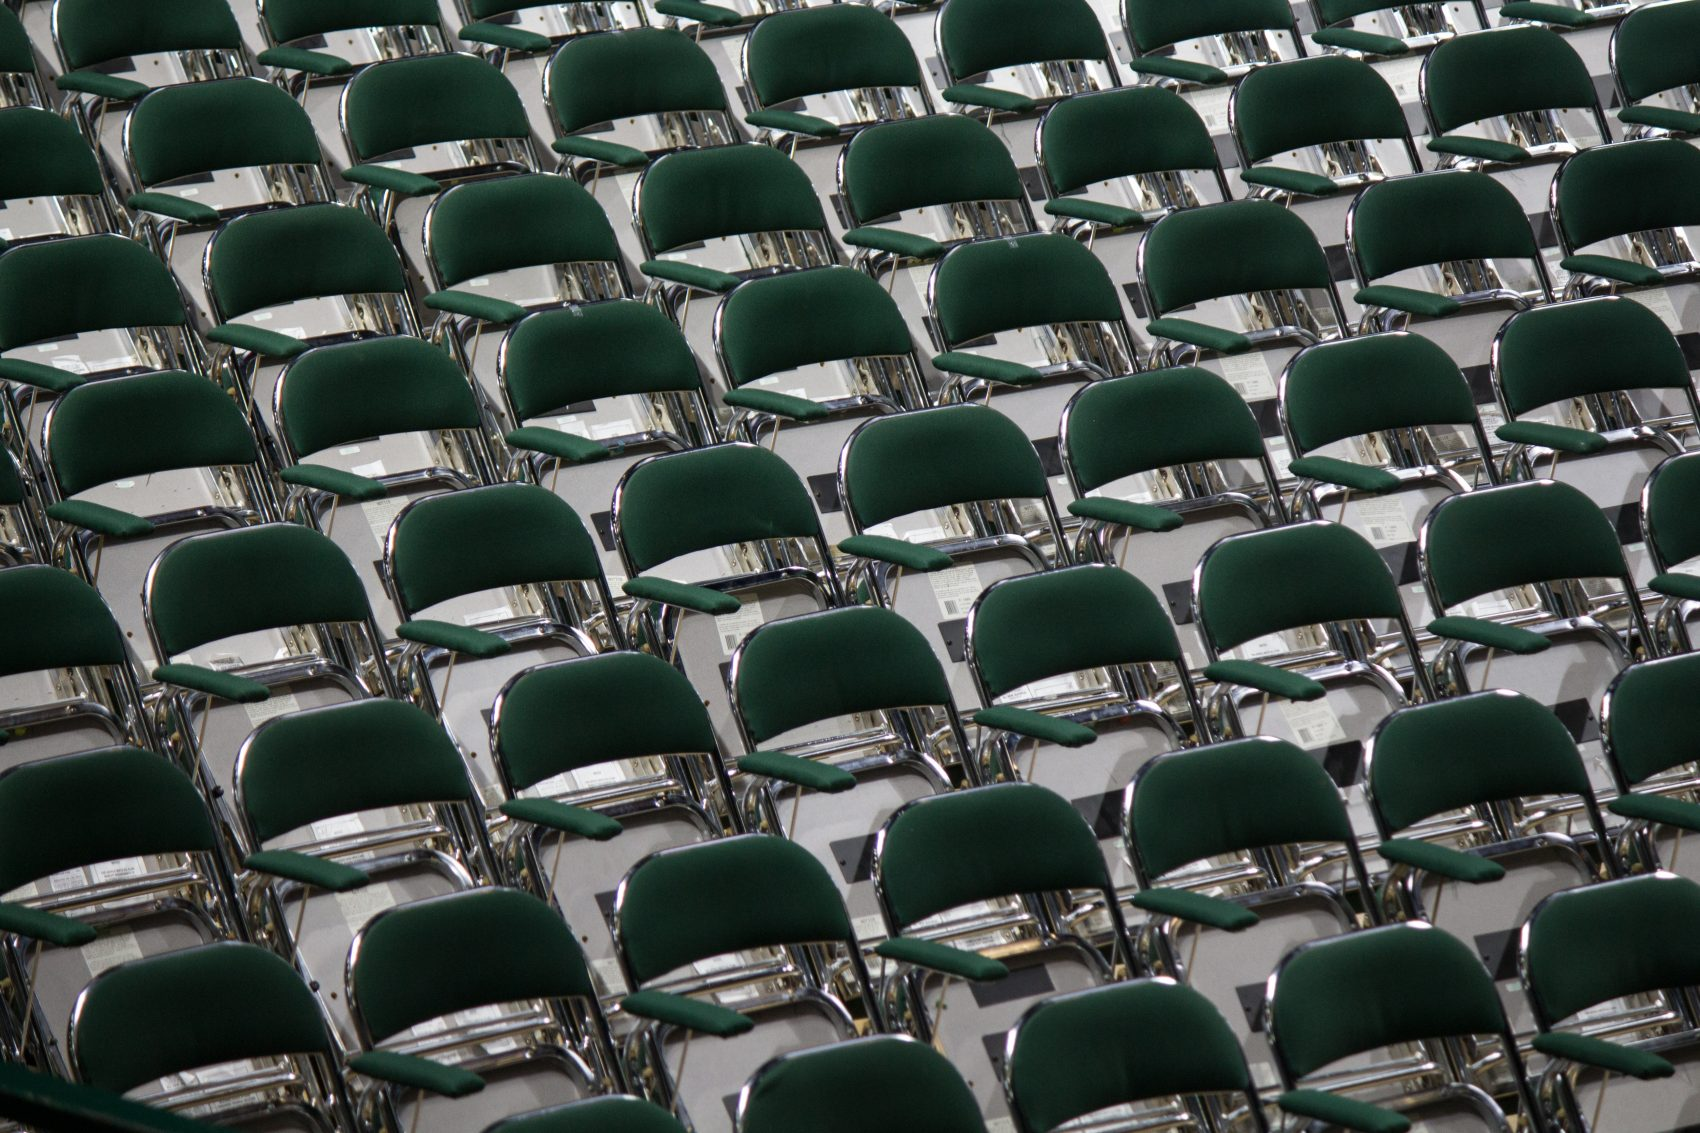 Chairs set up for a graduation ceremony. (Katie Montgomery/Unsplash)